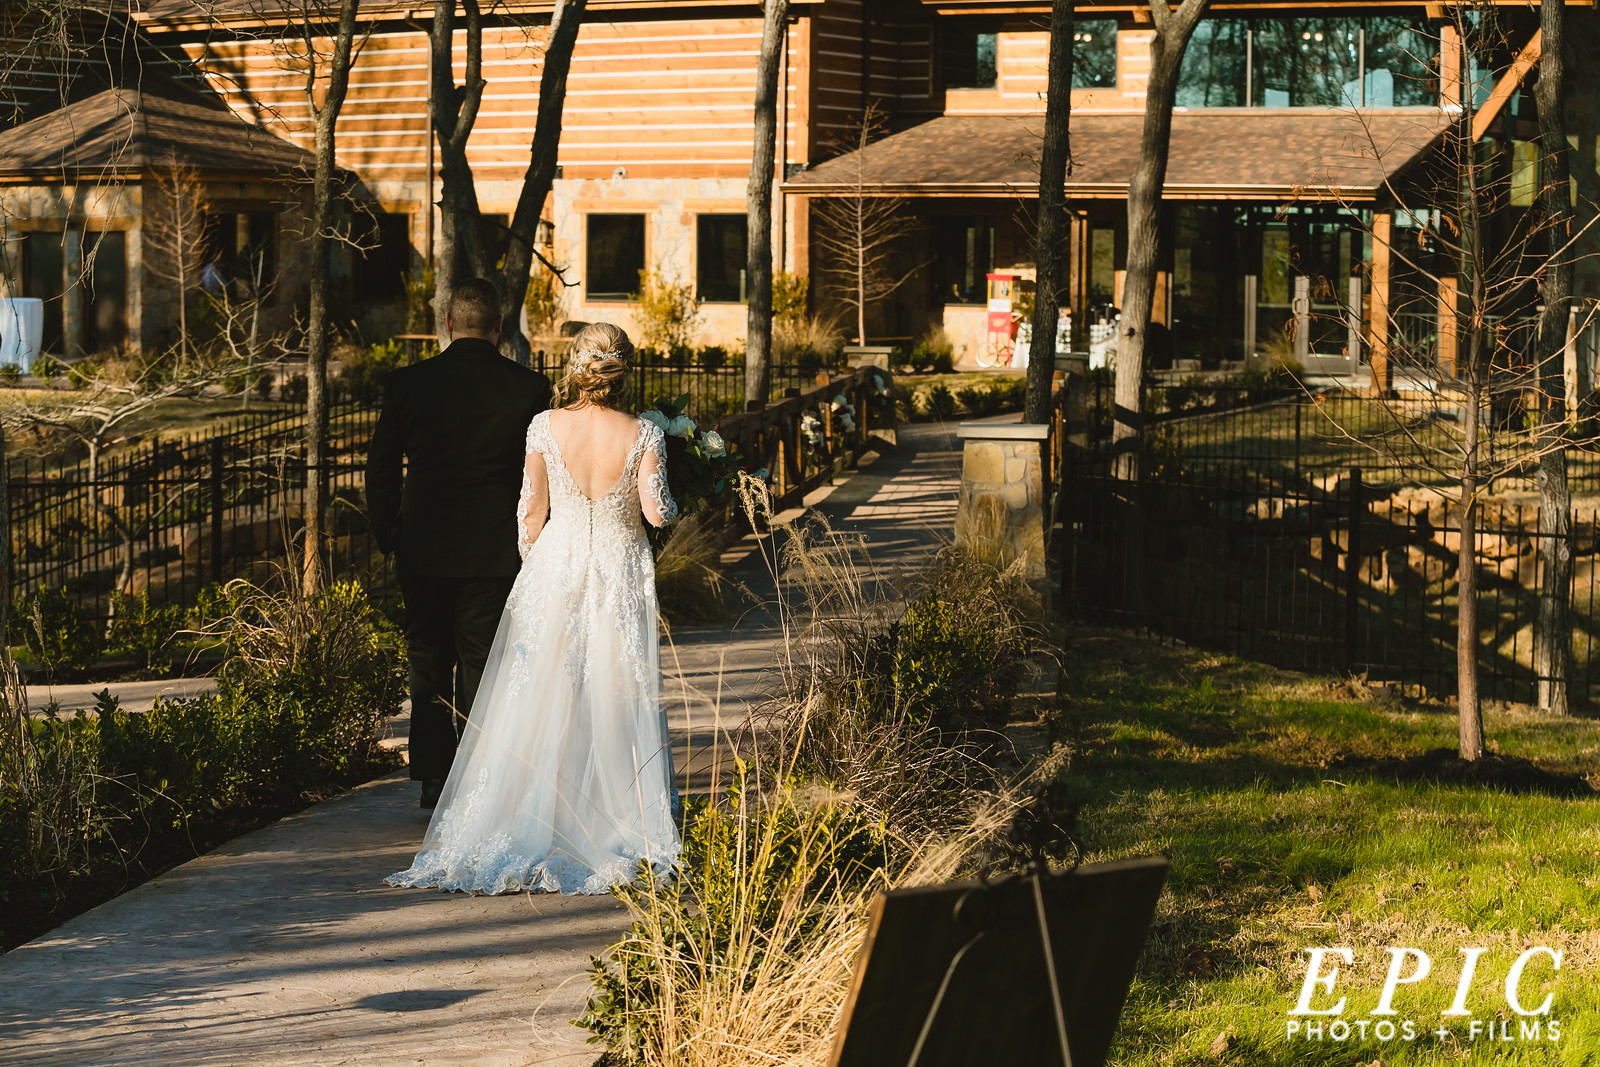 Hailee and Andrew walk away from their ceremony after towards The Springs Alvarado